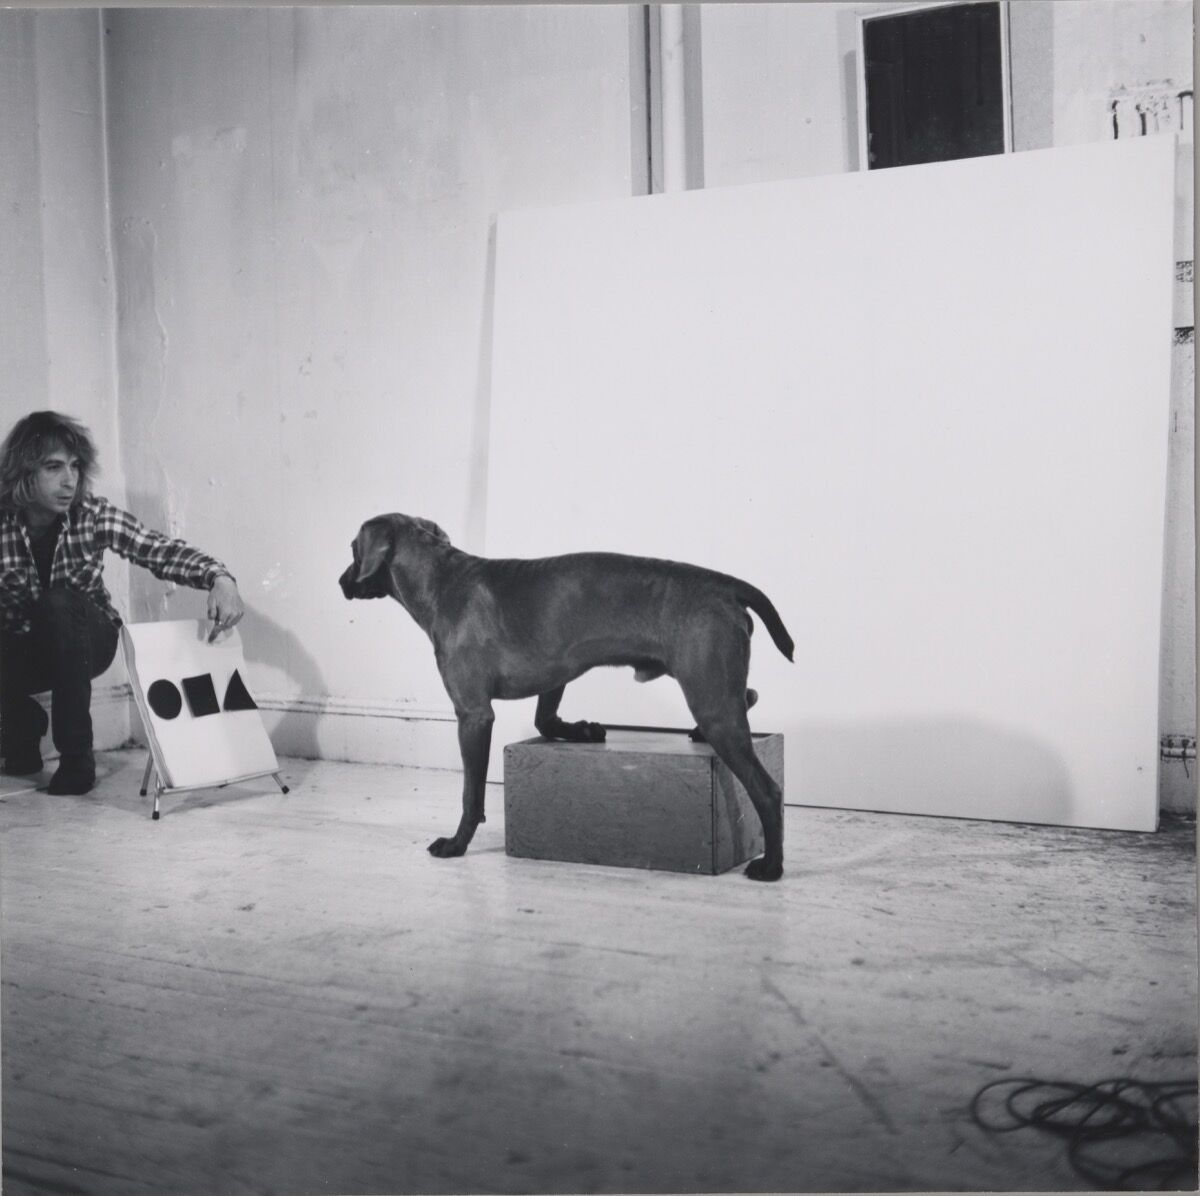 William Wegman, Before/On/After (detail), 1972. © William Wegman. Courtesy of the artist and The Metropolitan Museum of Art.